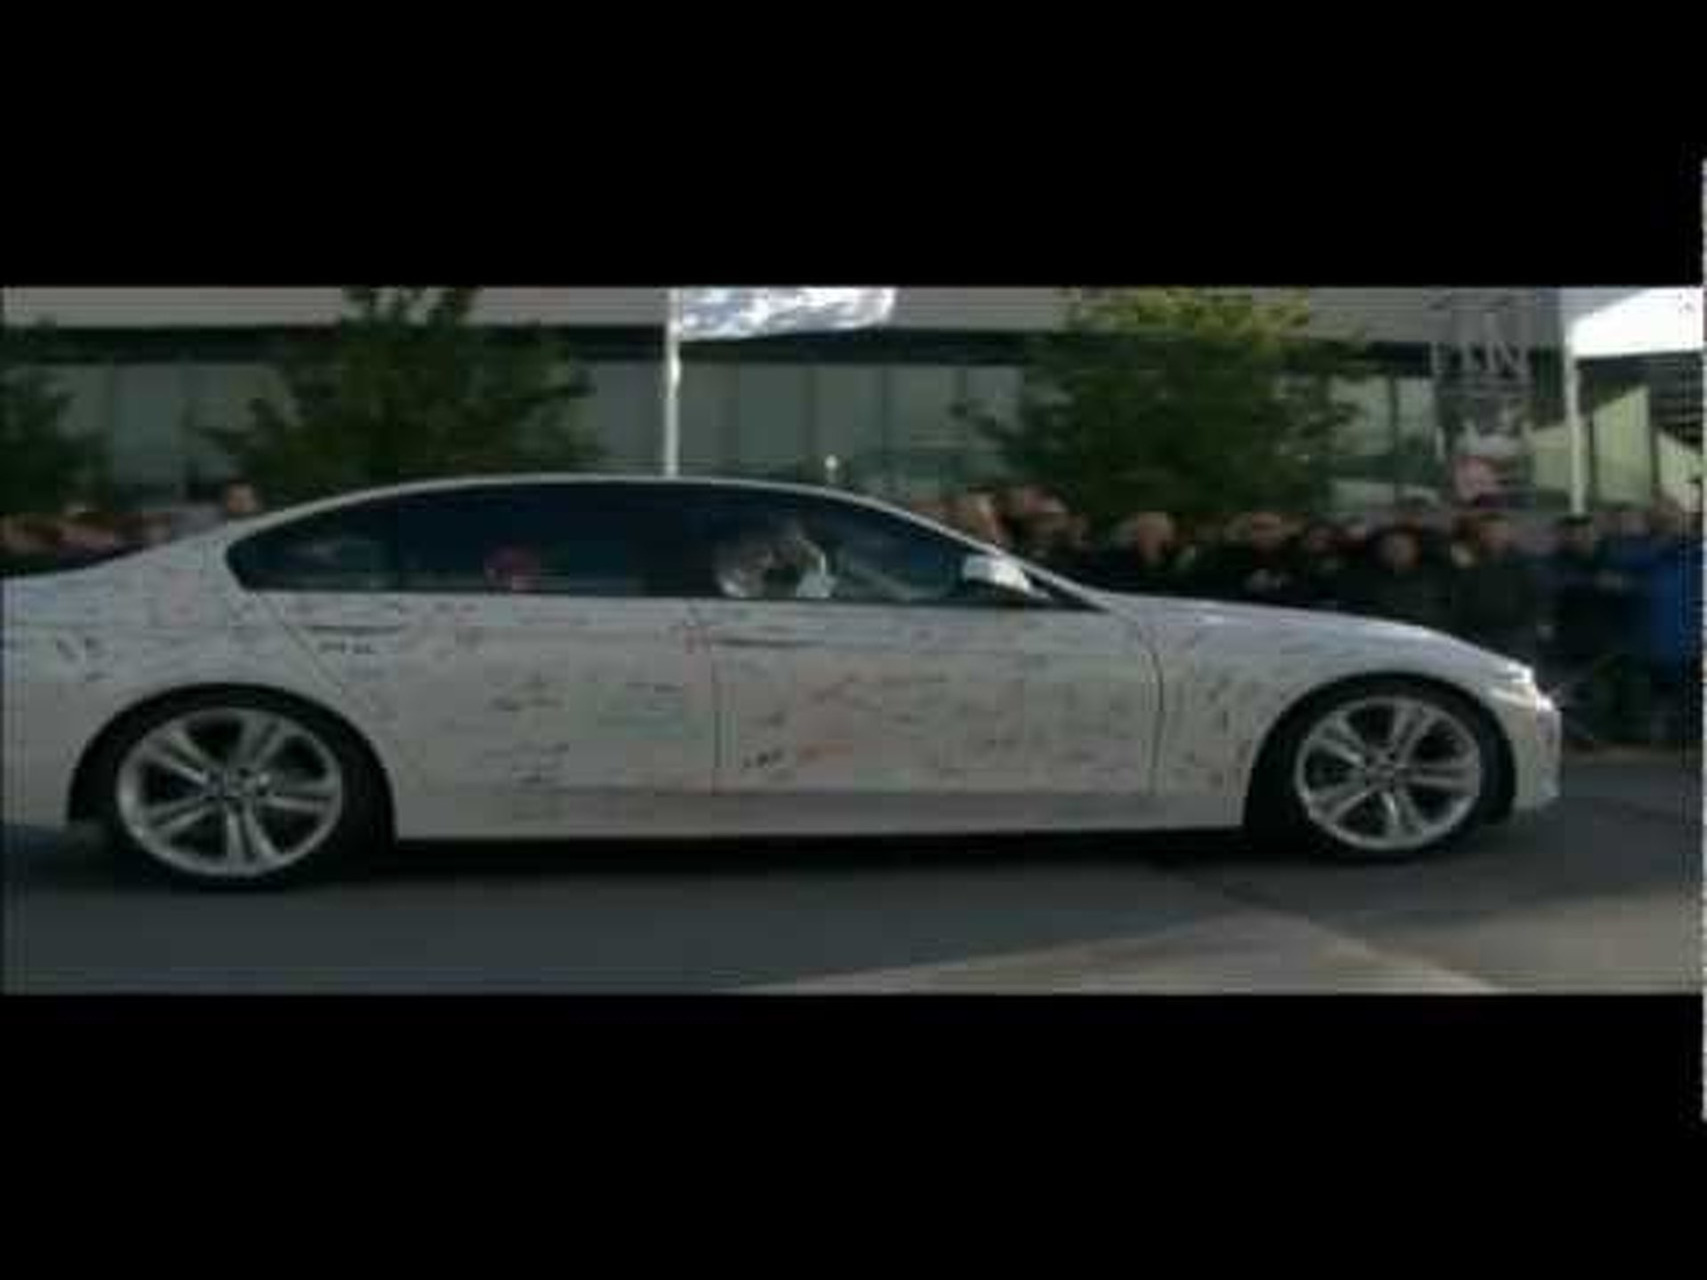 2012 BMW 3-Series World Premiere - First Impressions